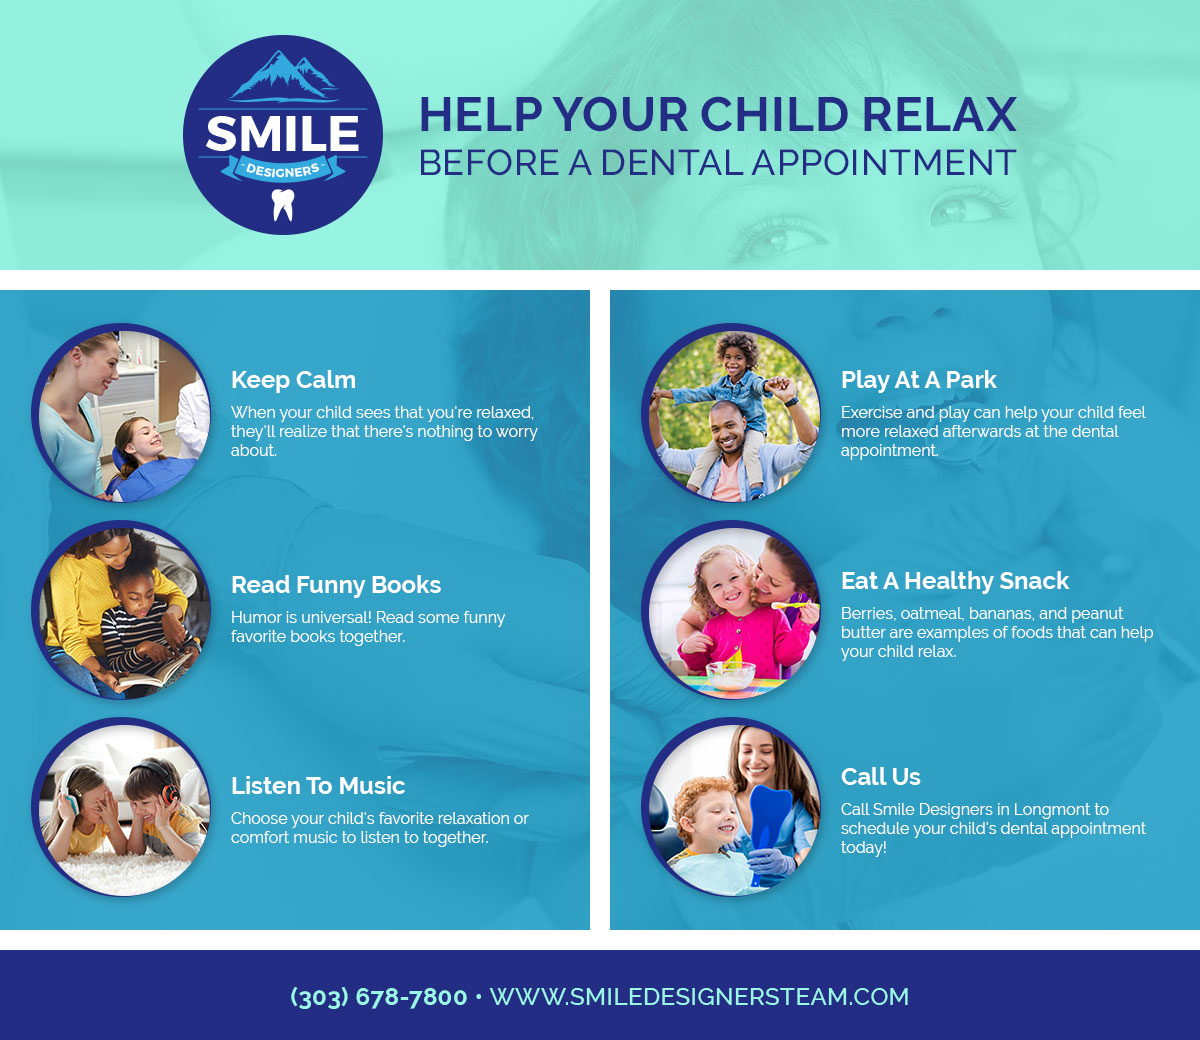 Help Your Child Relax Before A Dental Appointment Infographic